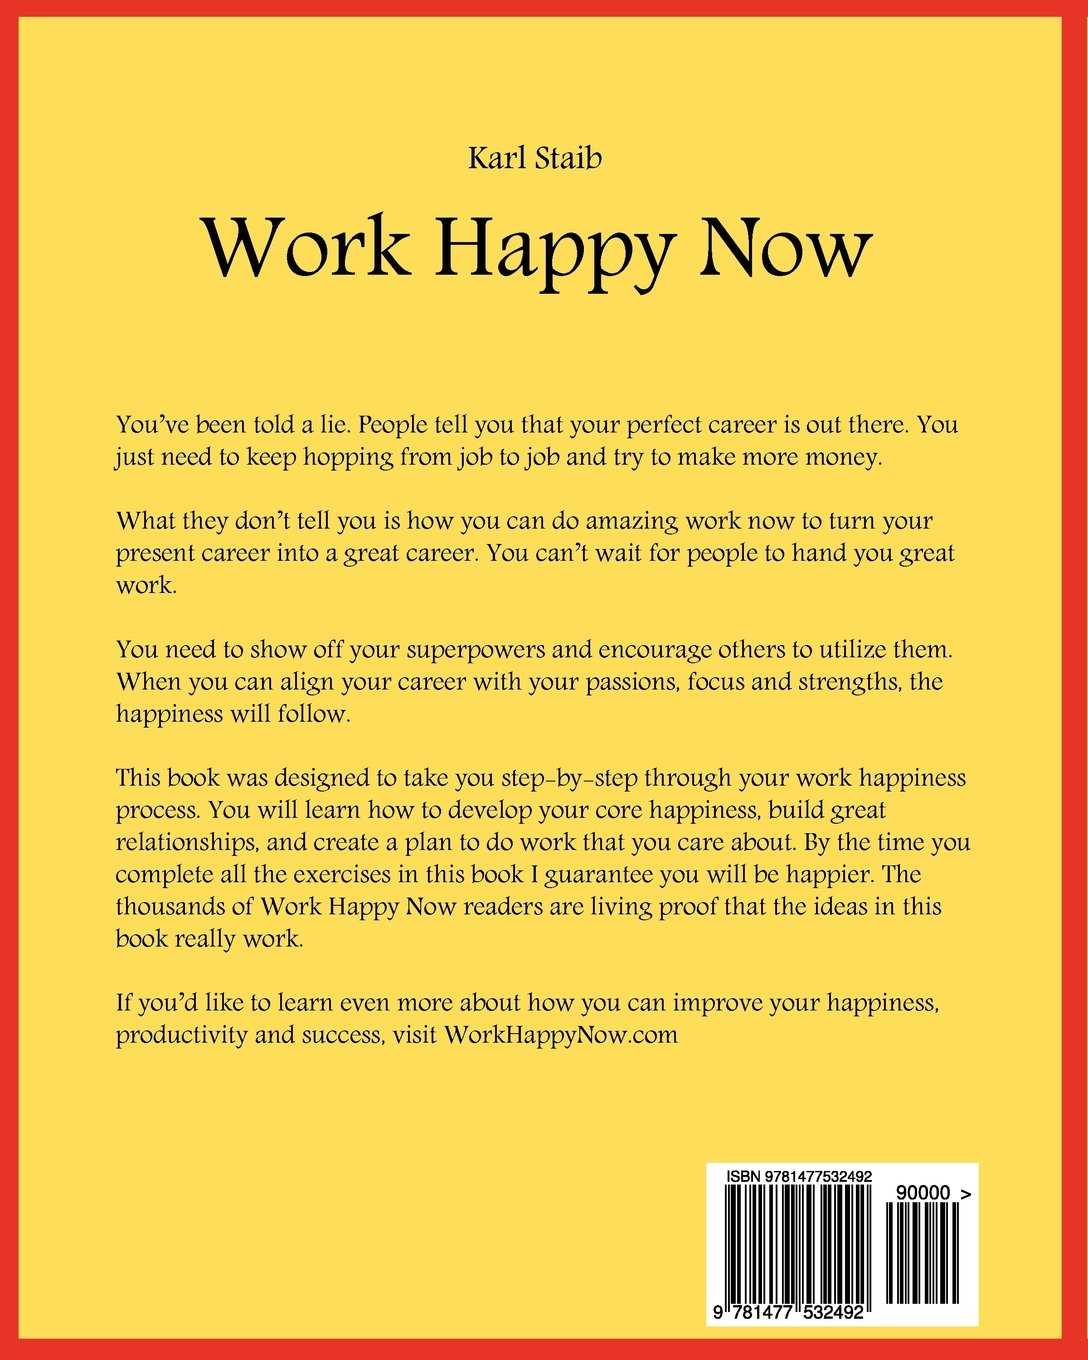 work happy now expand your superpowers live your passions and do work happy now expand your superpowers live your passions and do great work karl staib 9781477532492 amazon com books